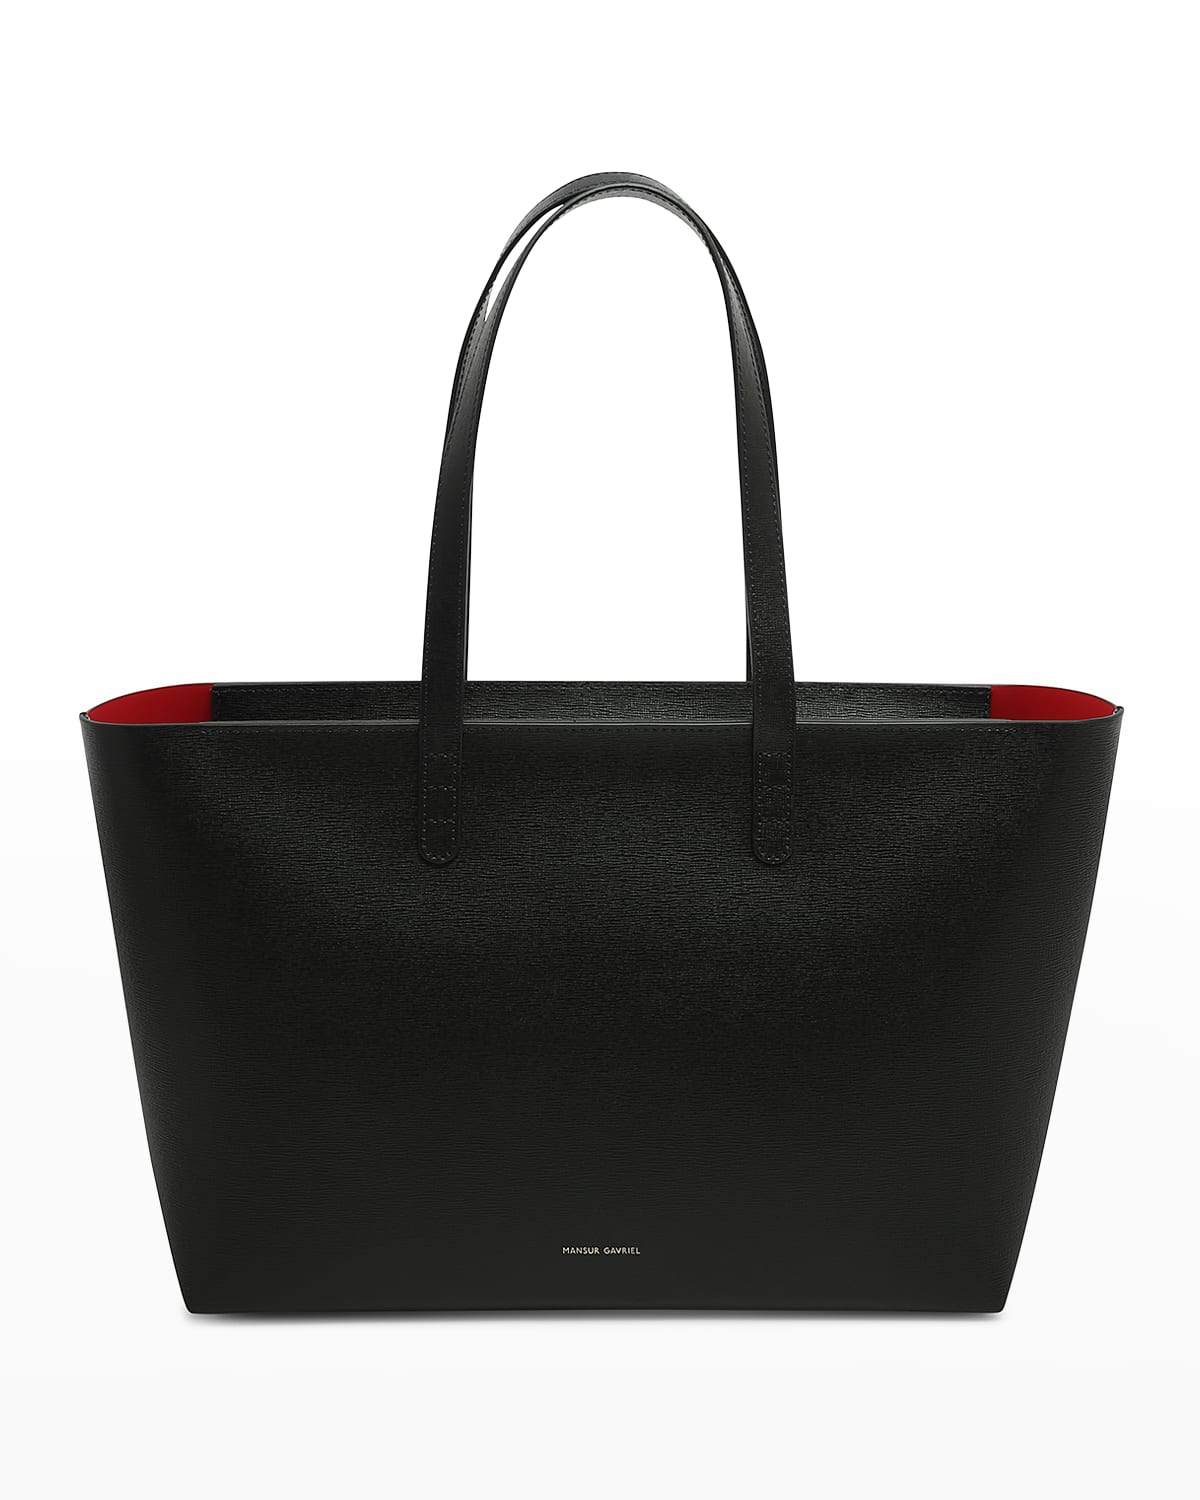 Small East-West Zip Leather Tote Bag